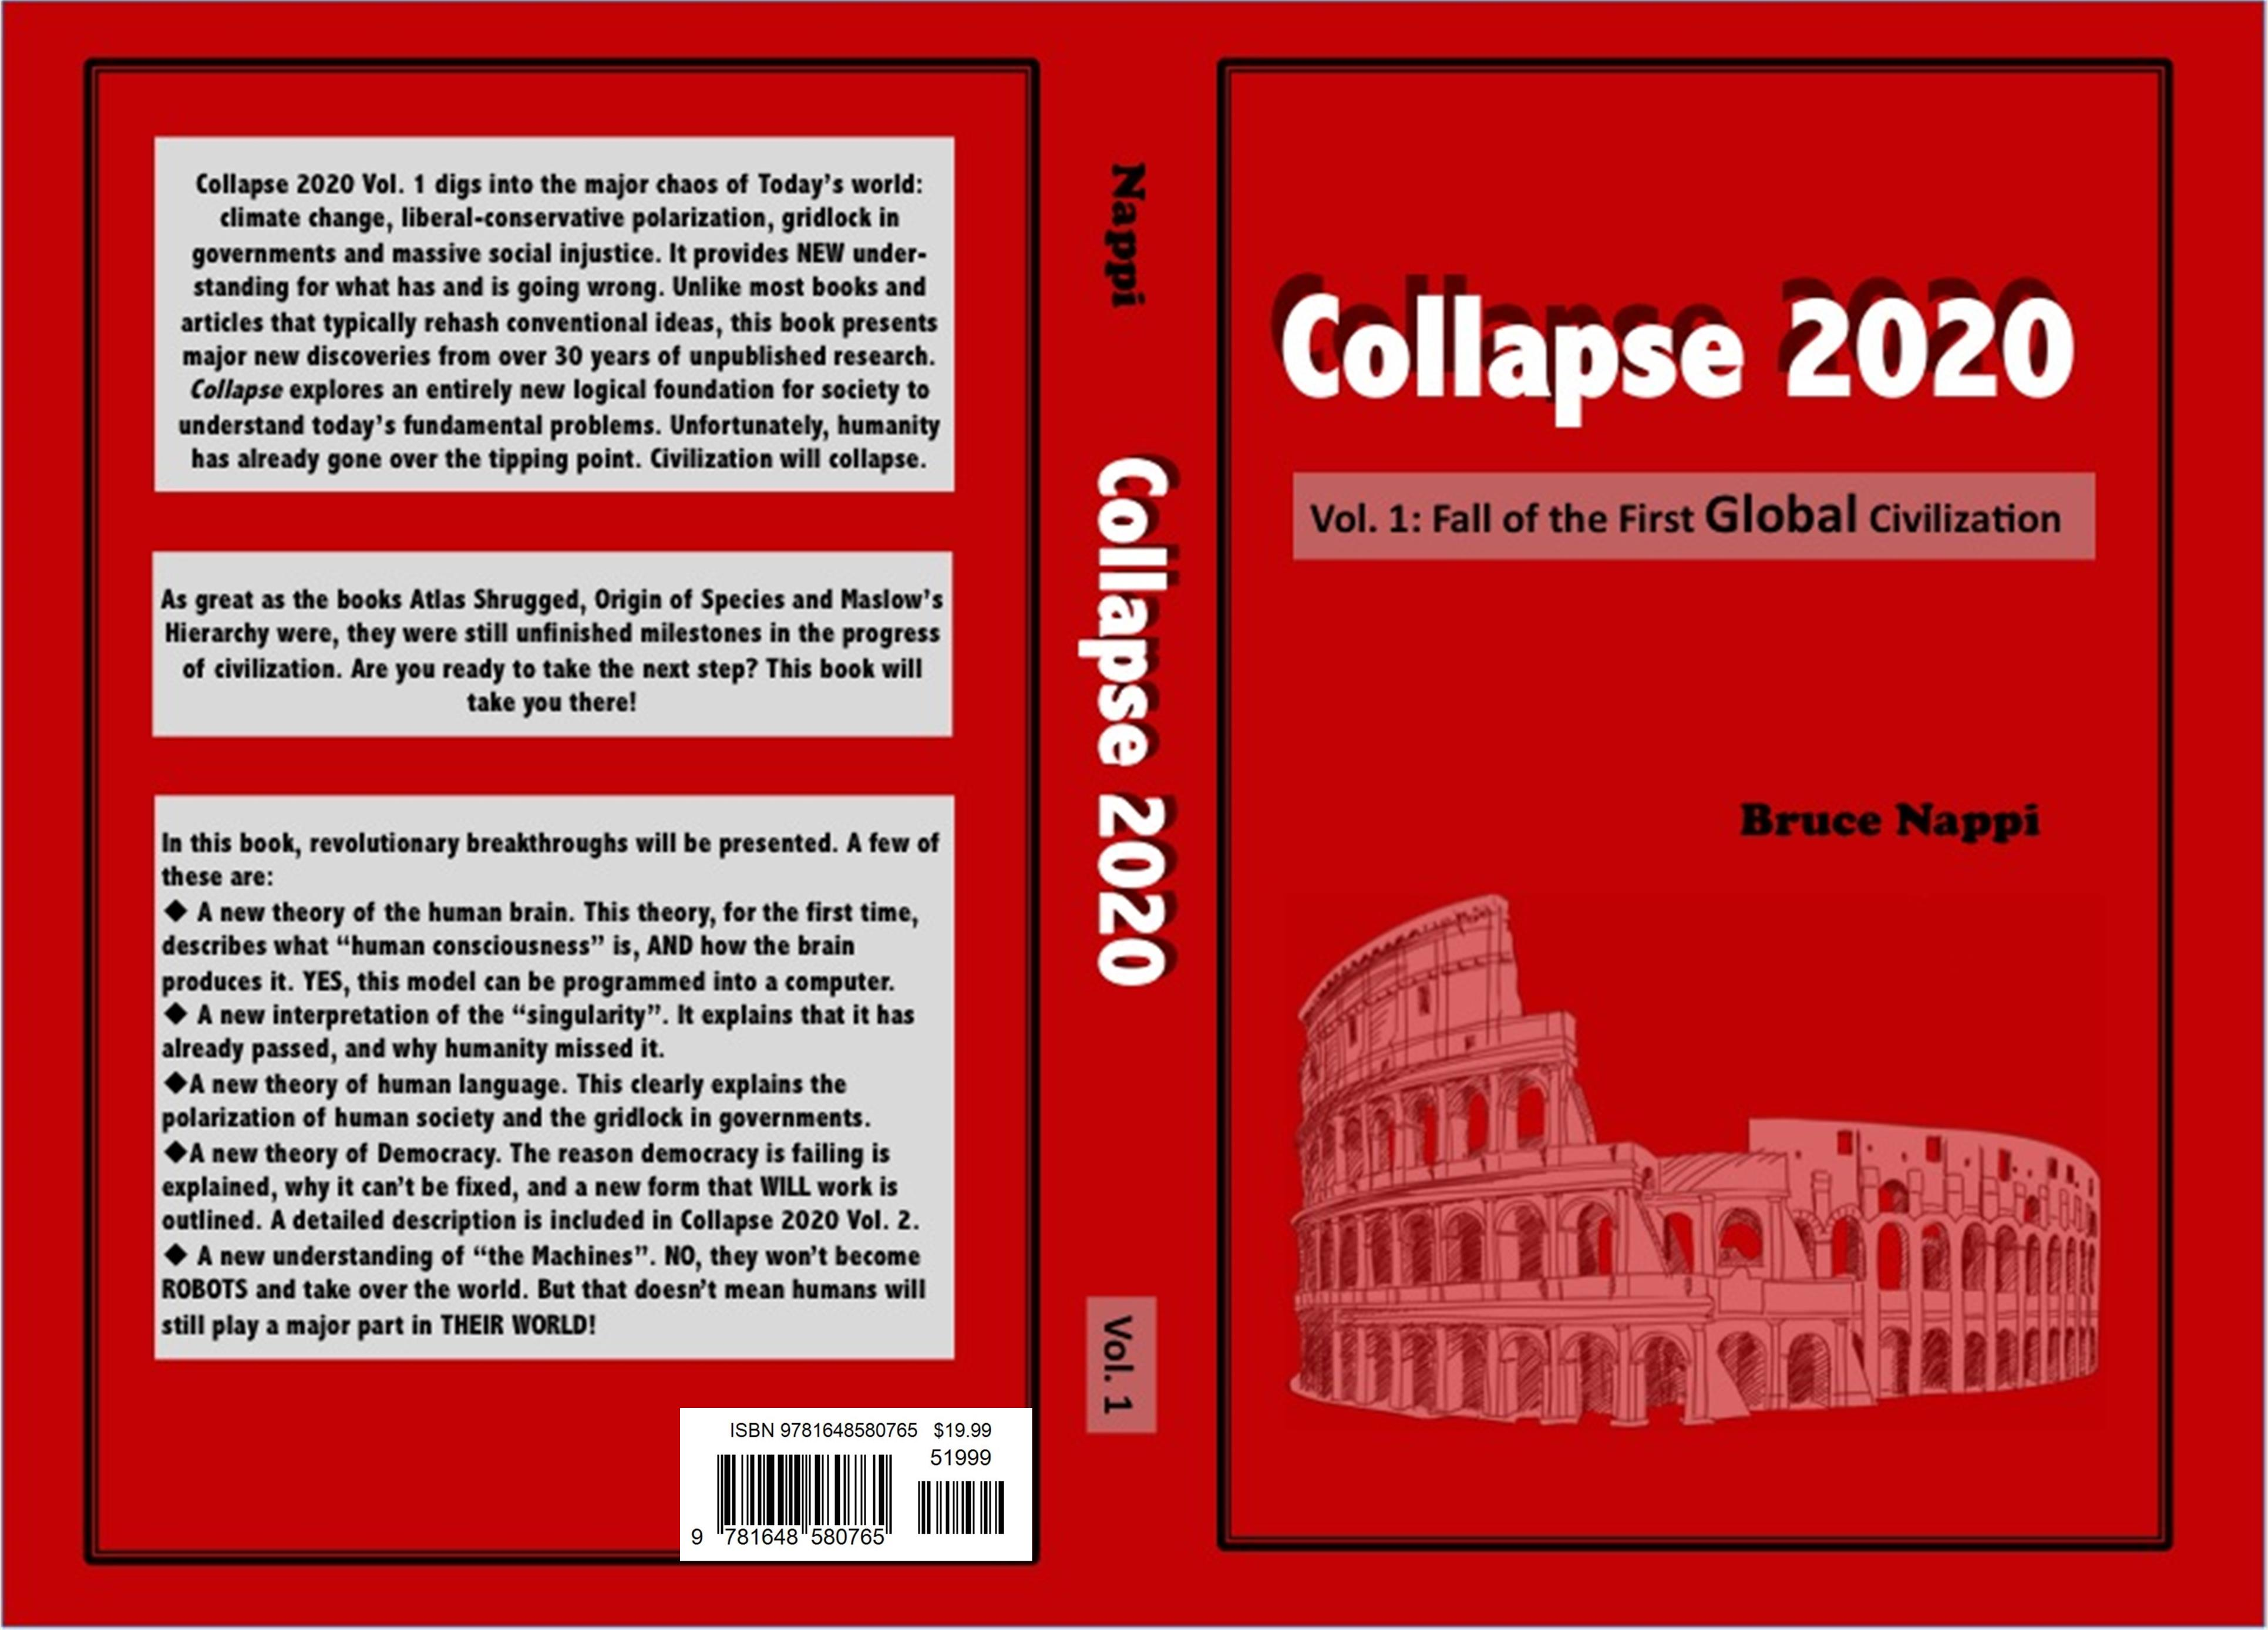 Collapse 2020 Vol. 1 : Fall of the First Global Civilization cover image